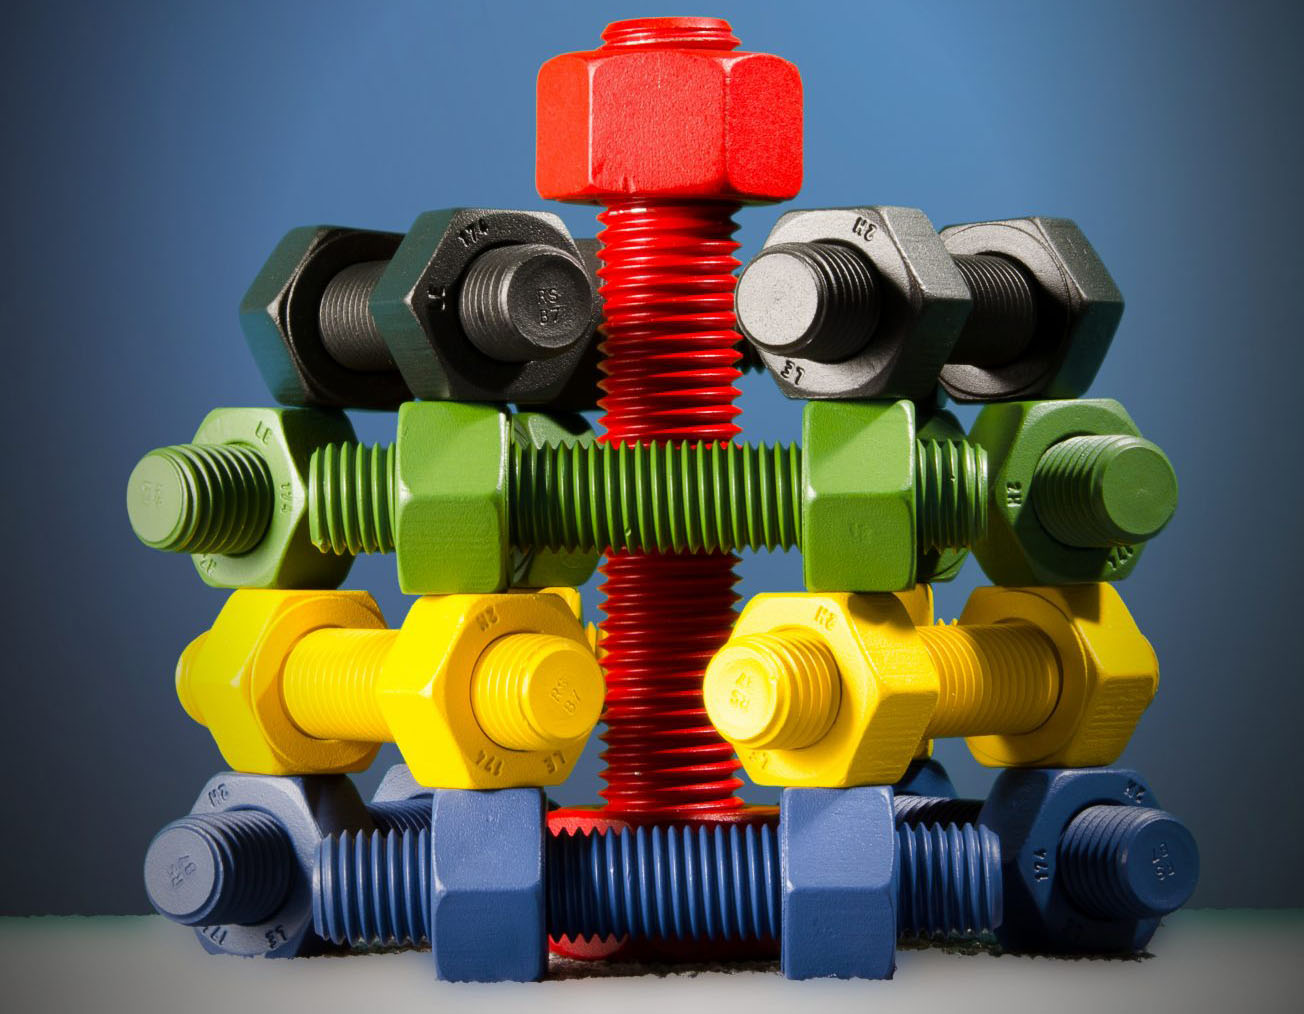 Rollstud - The Complete Solution For Your Bolting Requirements